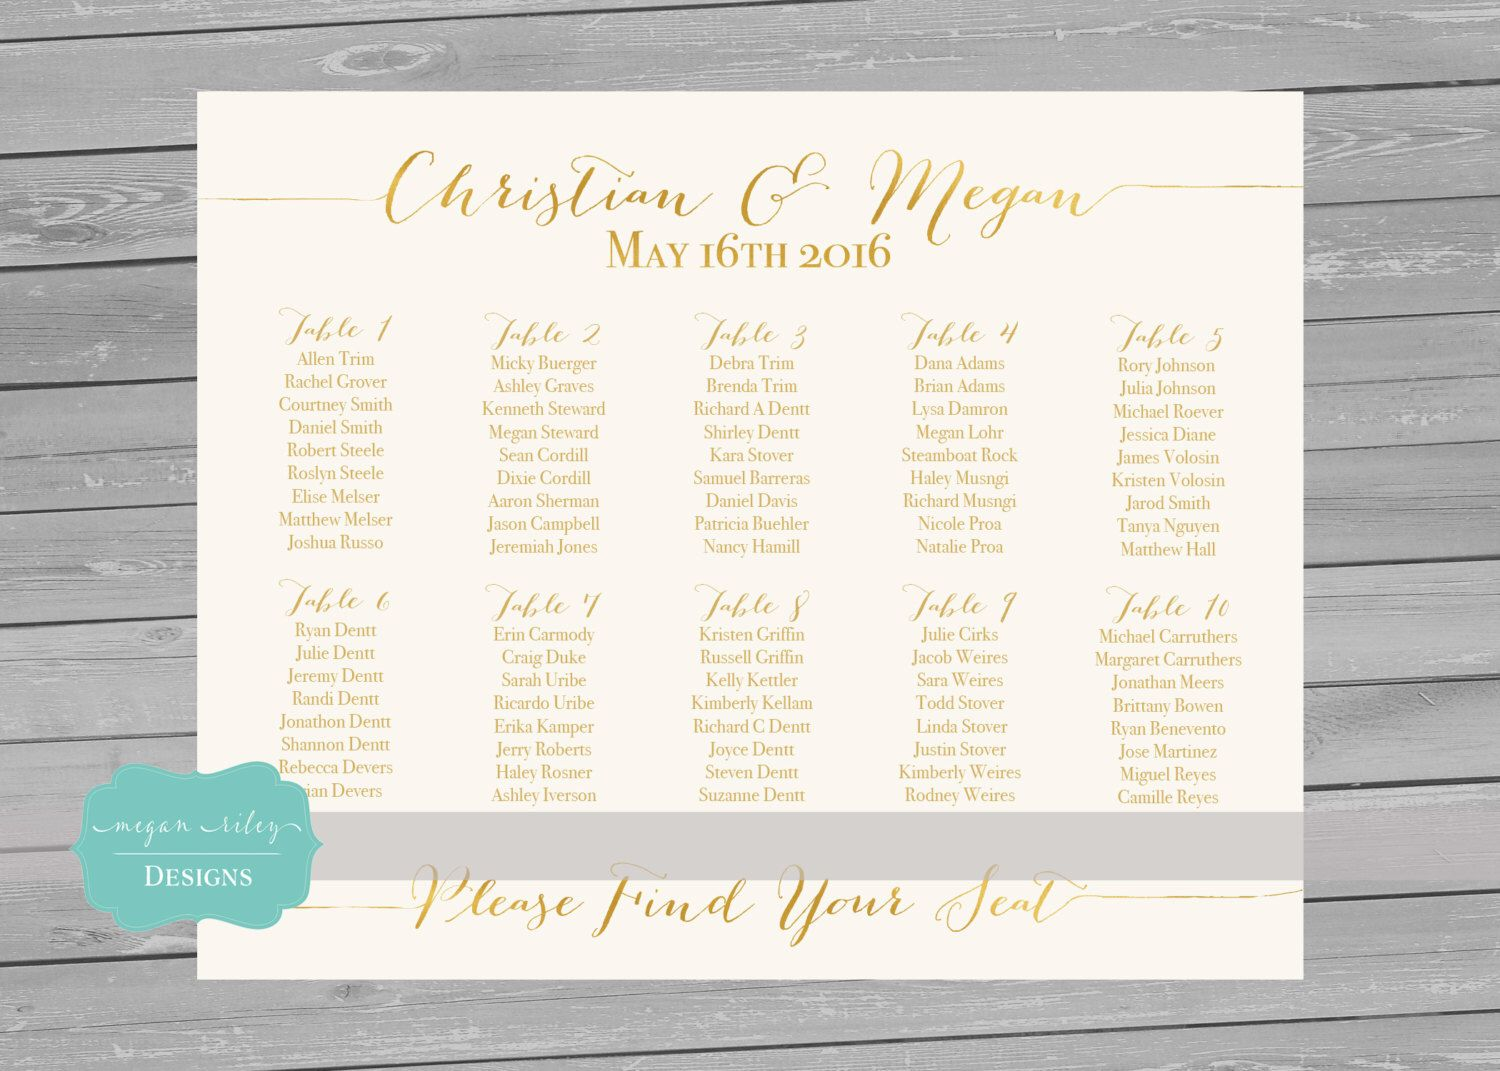 Printable seating chart gold foil faxu wedding alphabetical decoration by also rh pinterest